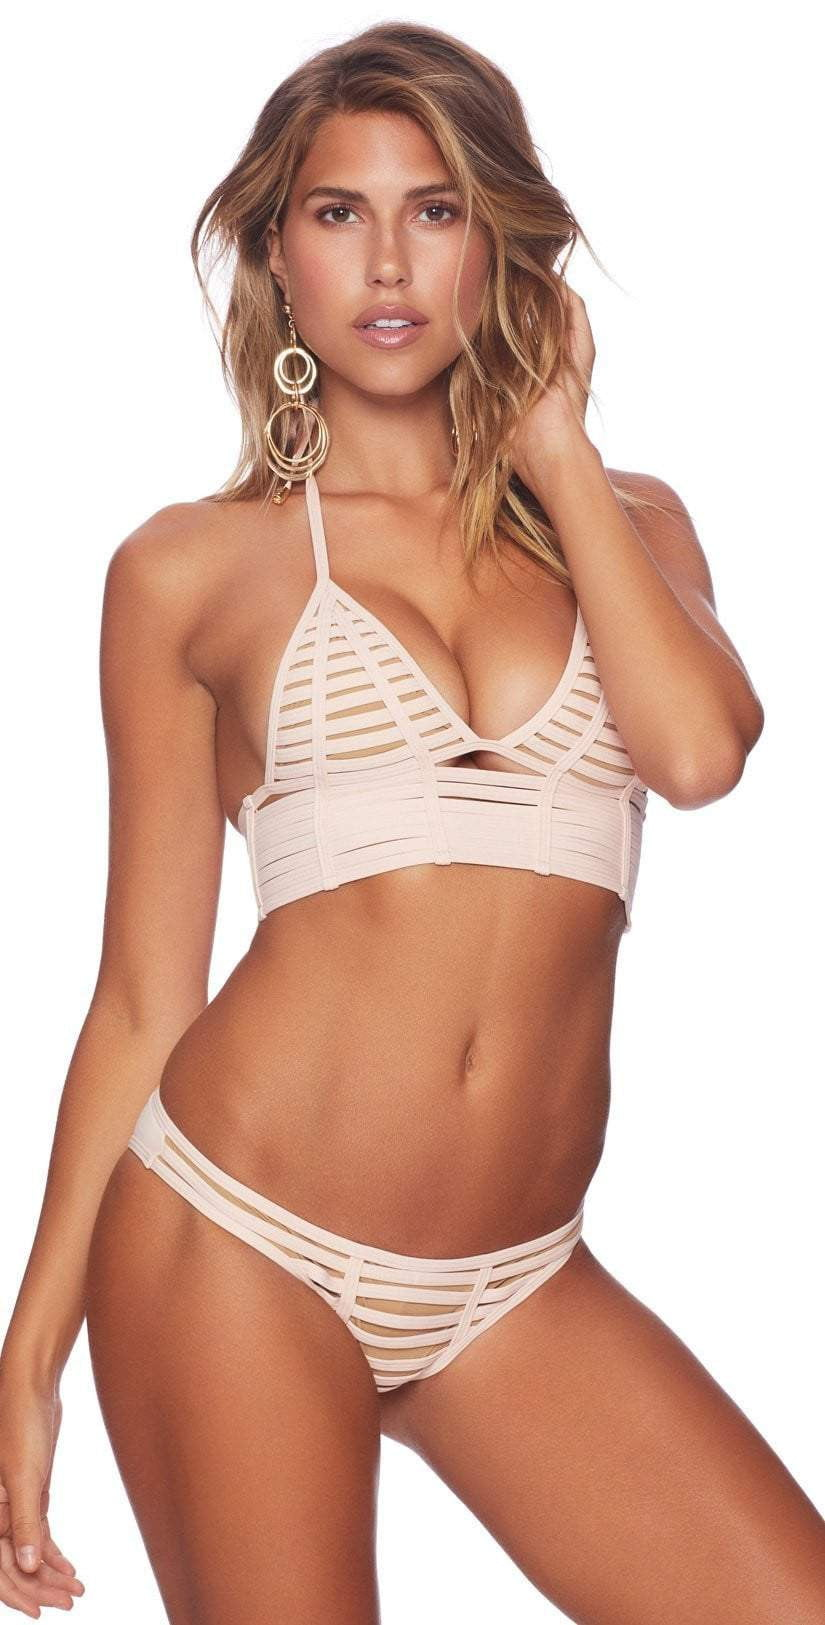 Beach Bunny Hard Summer Skimpy Bottom in Blush B16104B1-BLUSH: